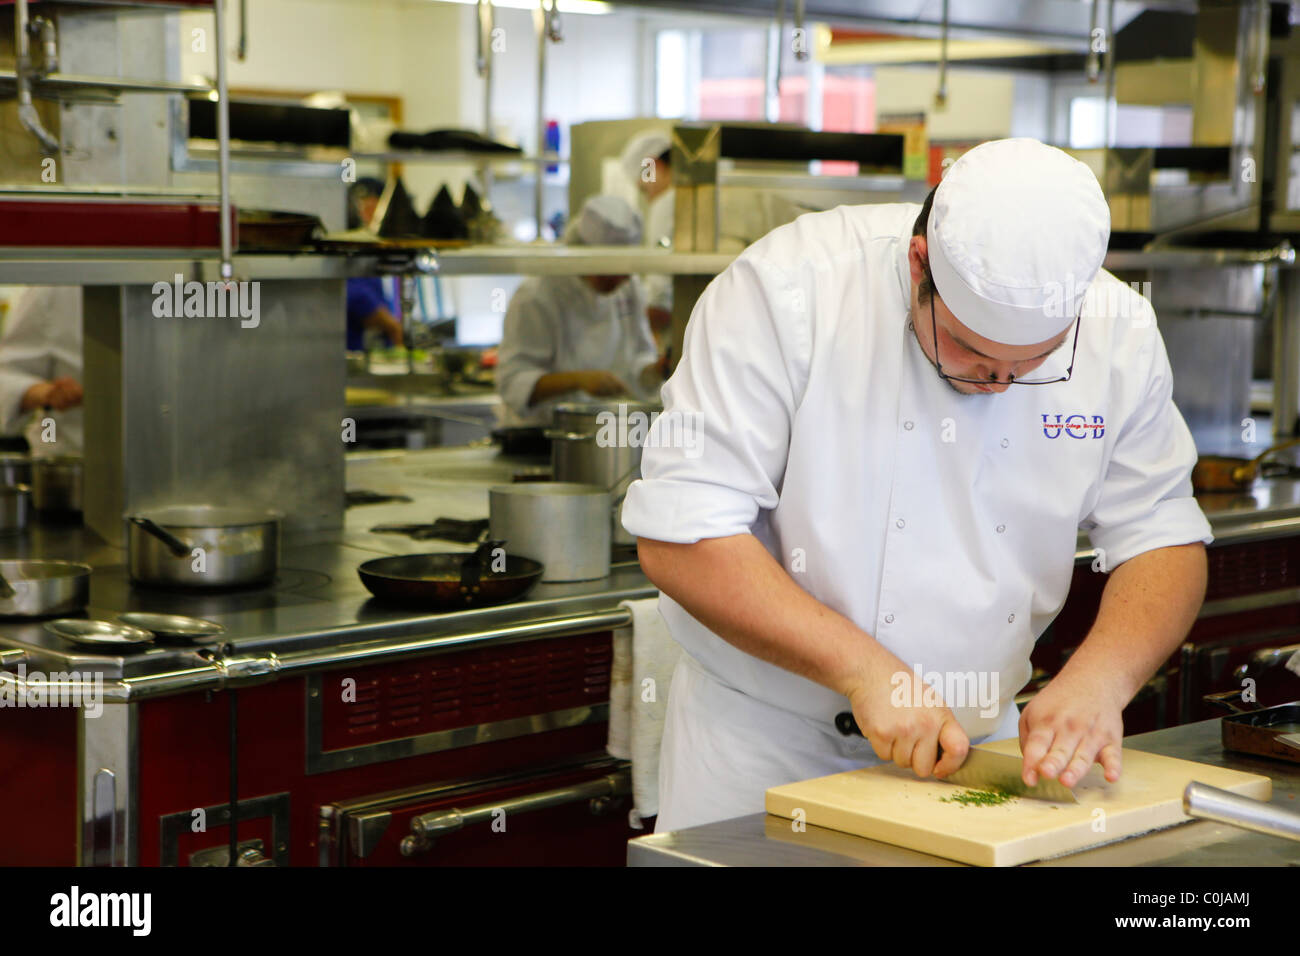 Chefs in a kitchen preparing food at a college for further and higher education - Stock Image